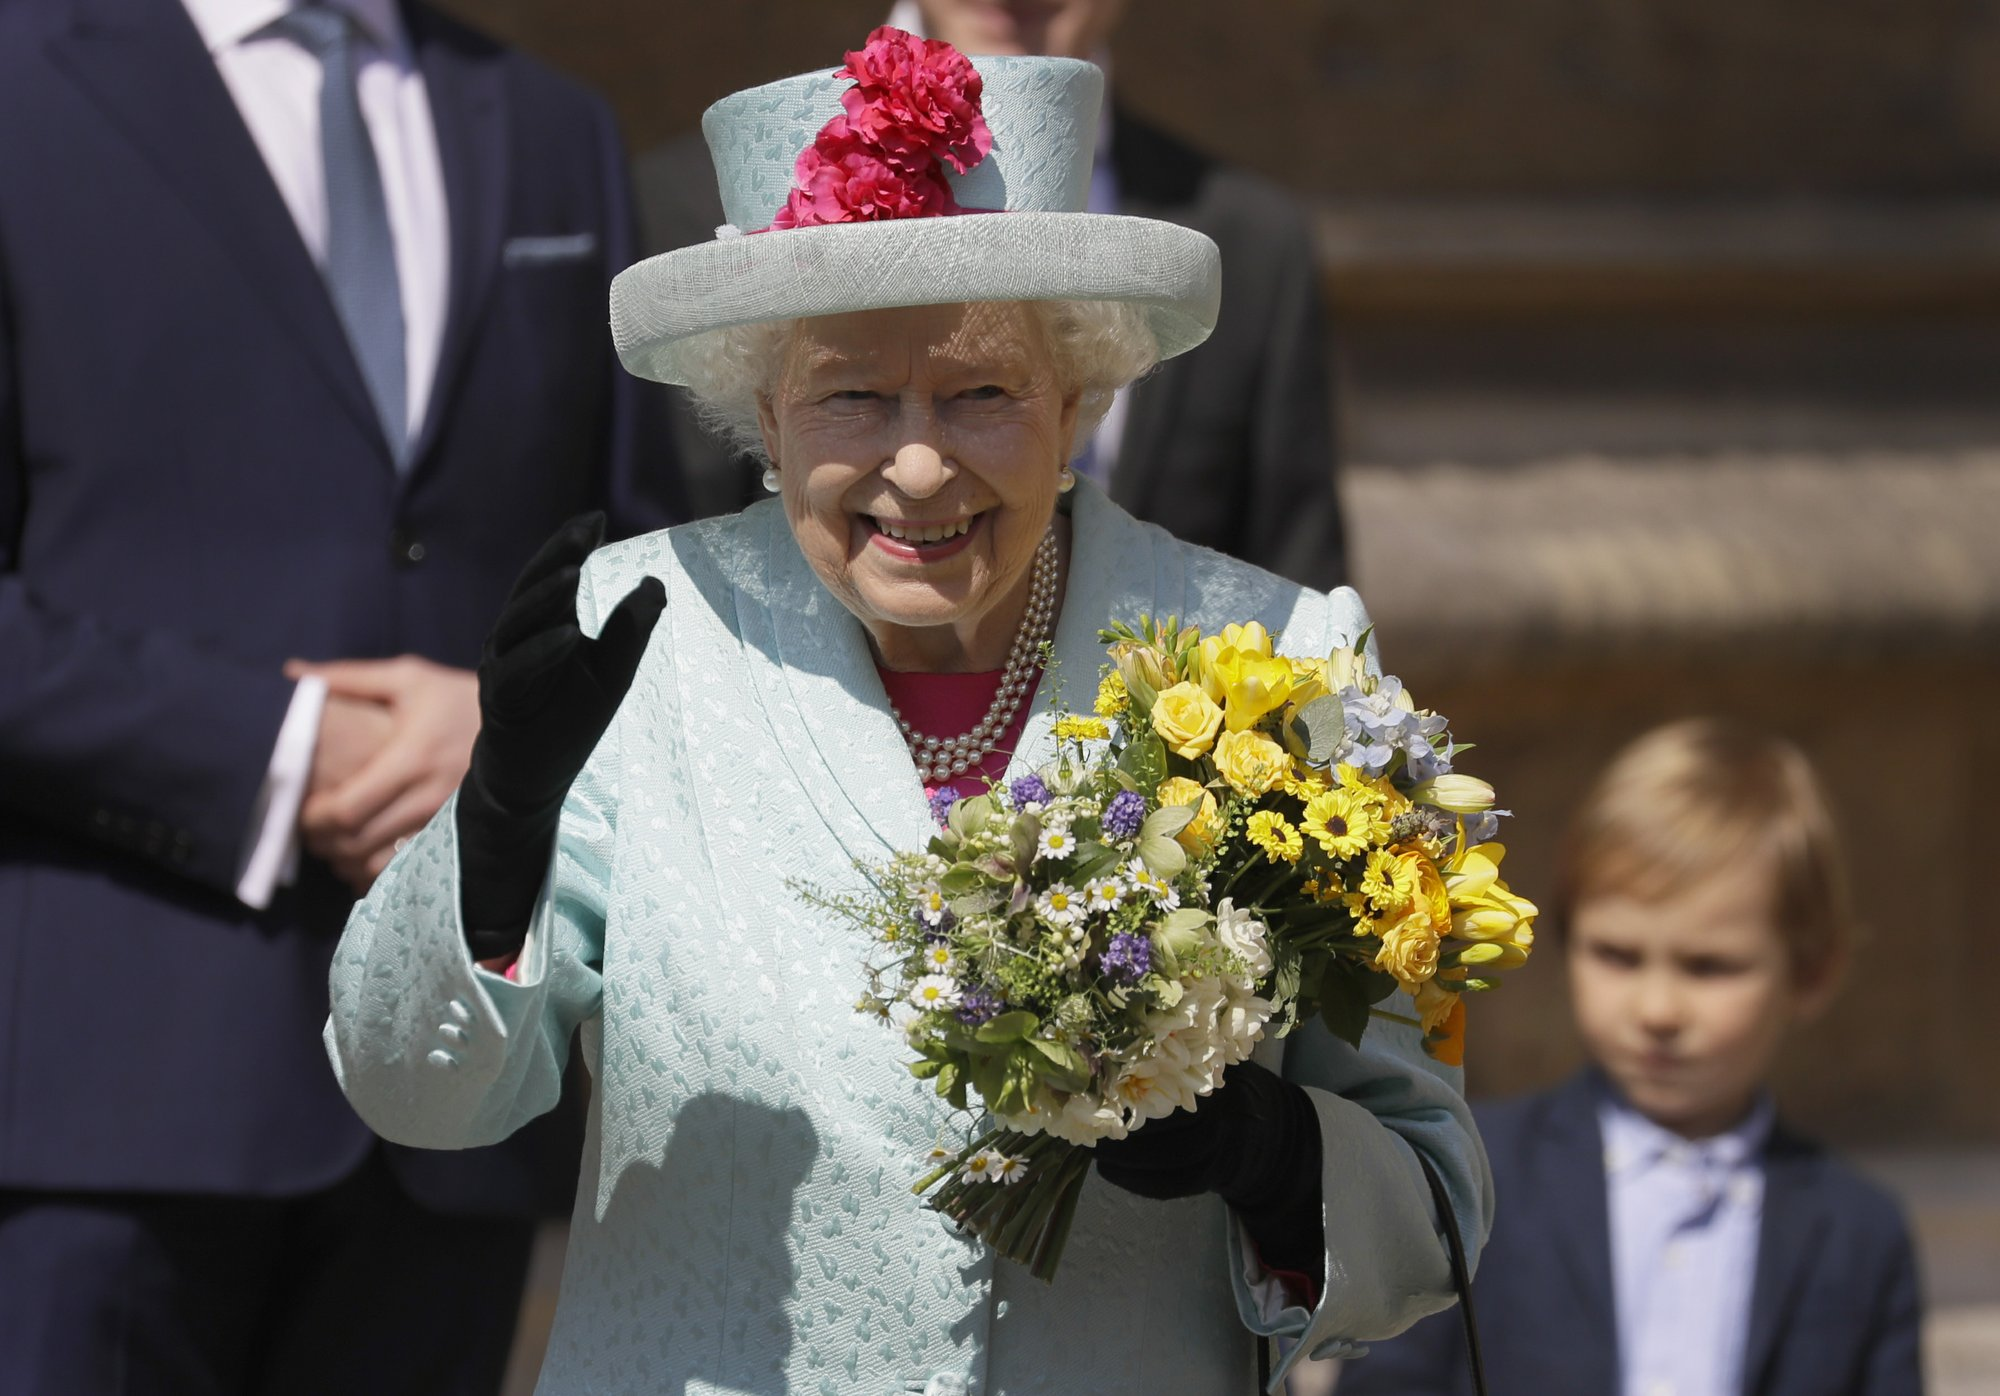 Britain's Queen Elizabeth II waves to the public as she leaves after attending the Easter Mattins Service at St. George's Chapel at Windsor Castle in England on Sunday, April 21, 2019. (AP Photo/Kirsty Wigglesworth, pool)